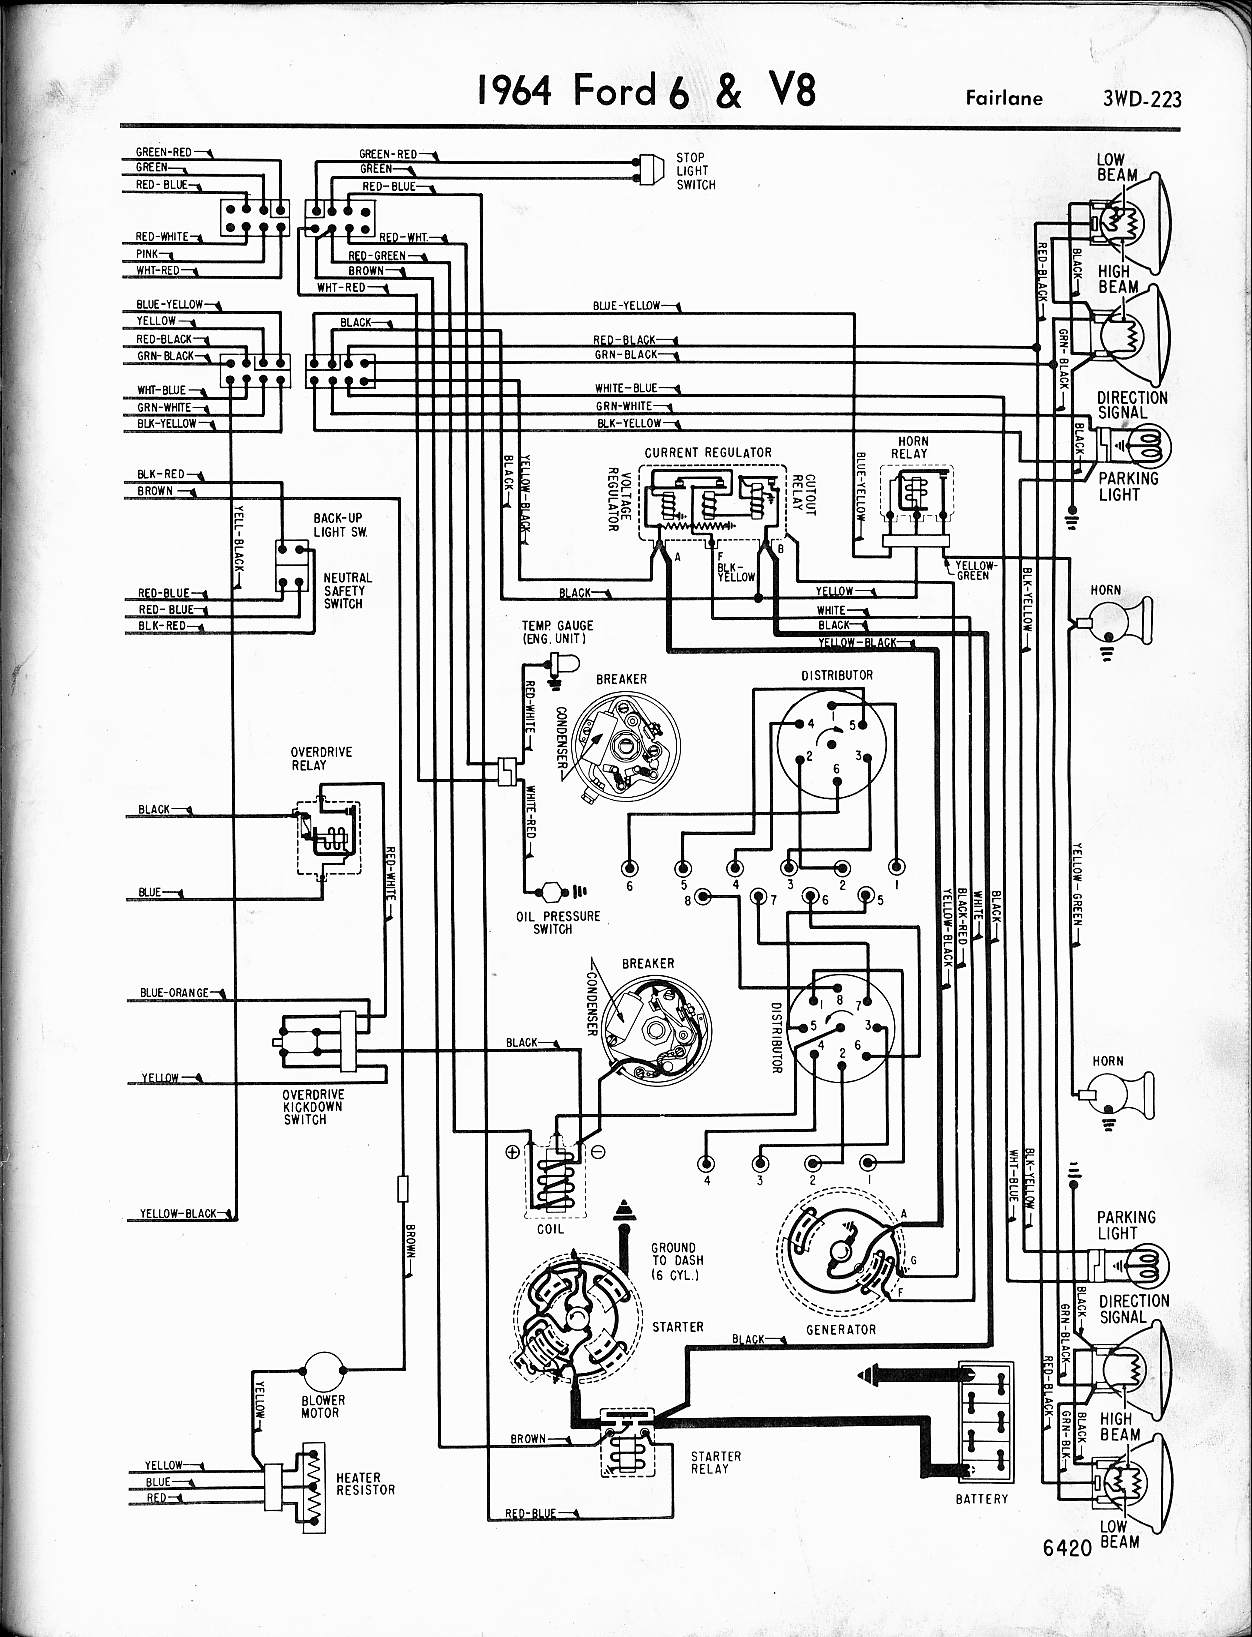 ford wiring diagrams 1964 6 v8 galaxie left